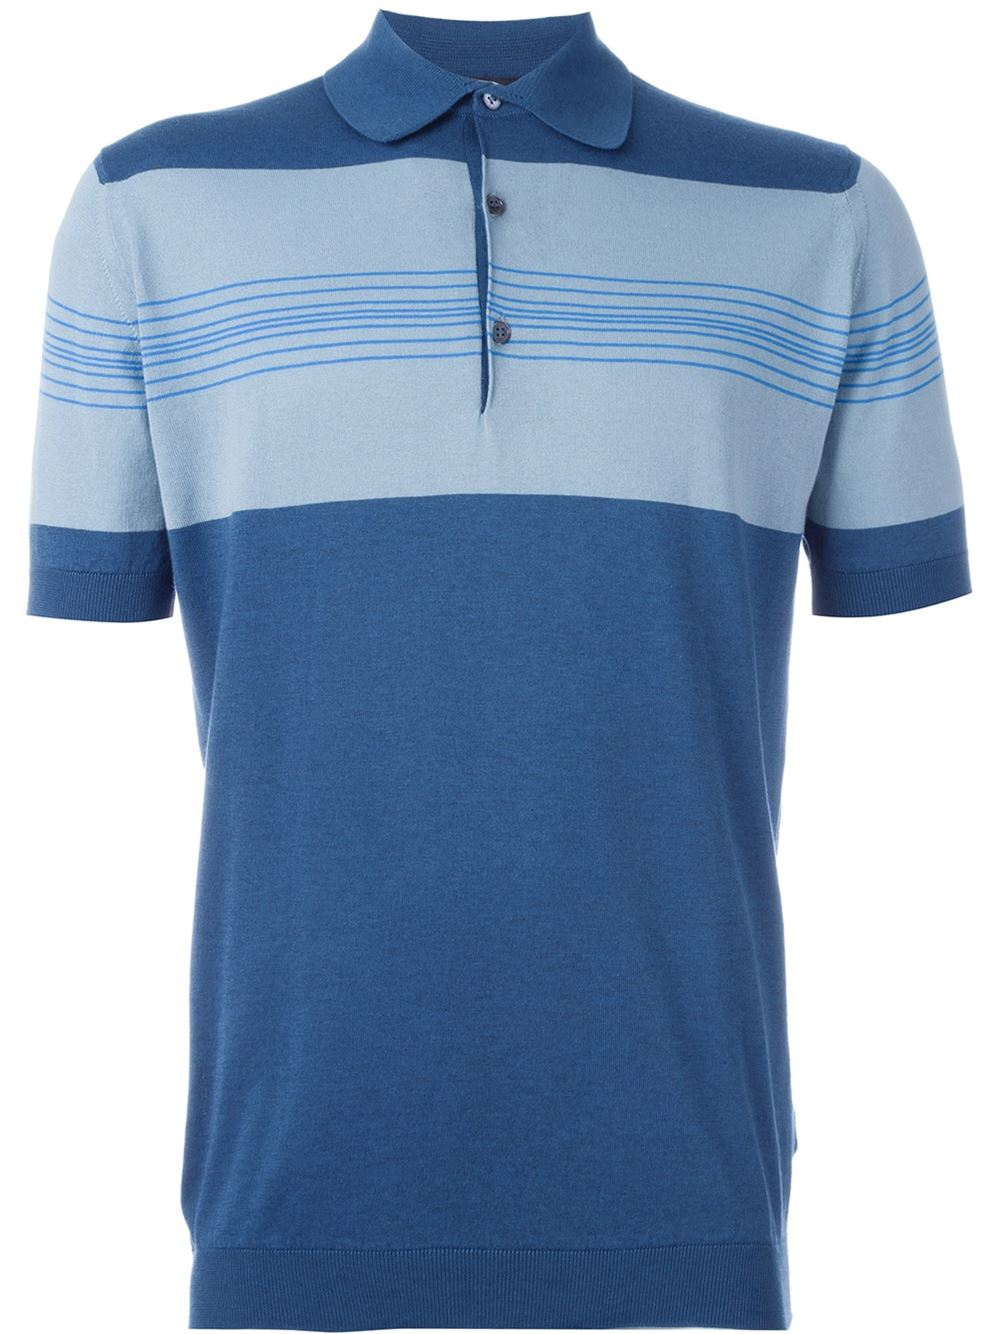 Lyst john smedley knit polo shirt in blue for men for Knitted polo shirt mens